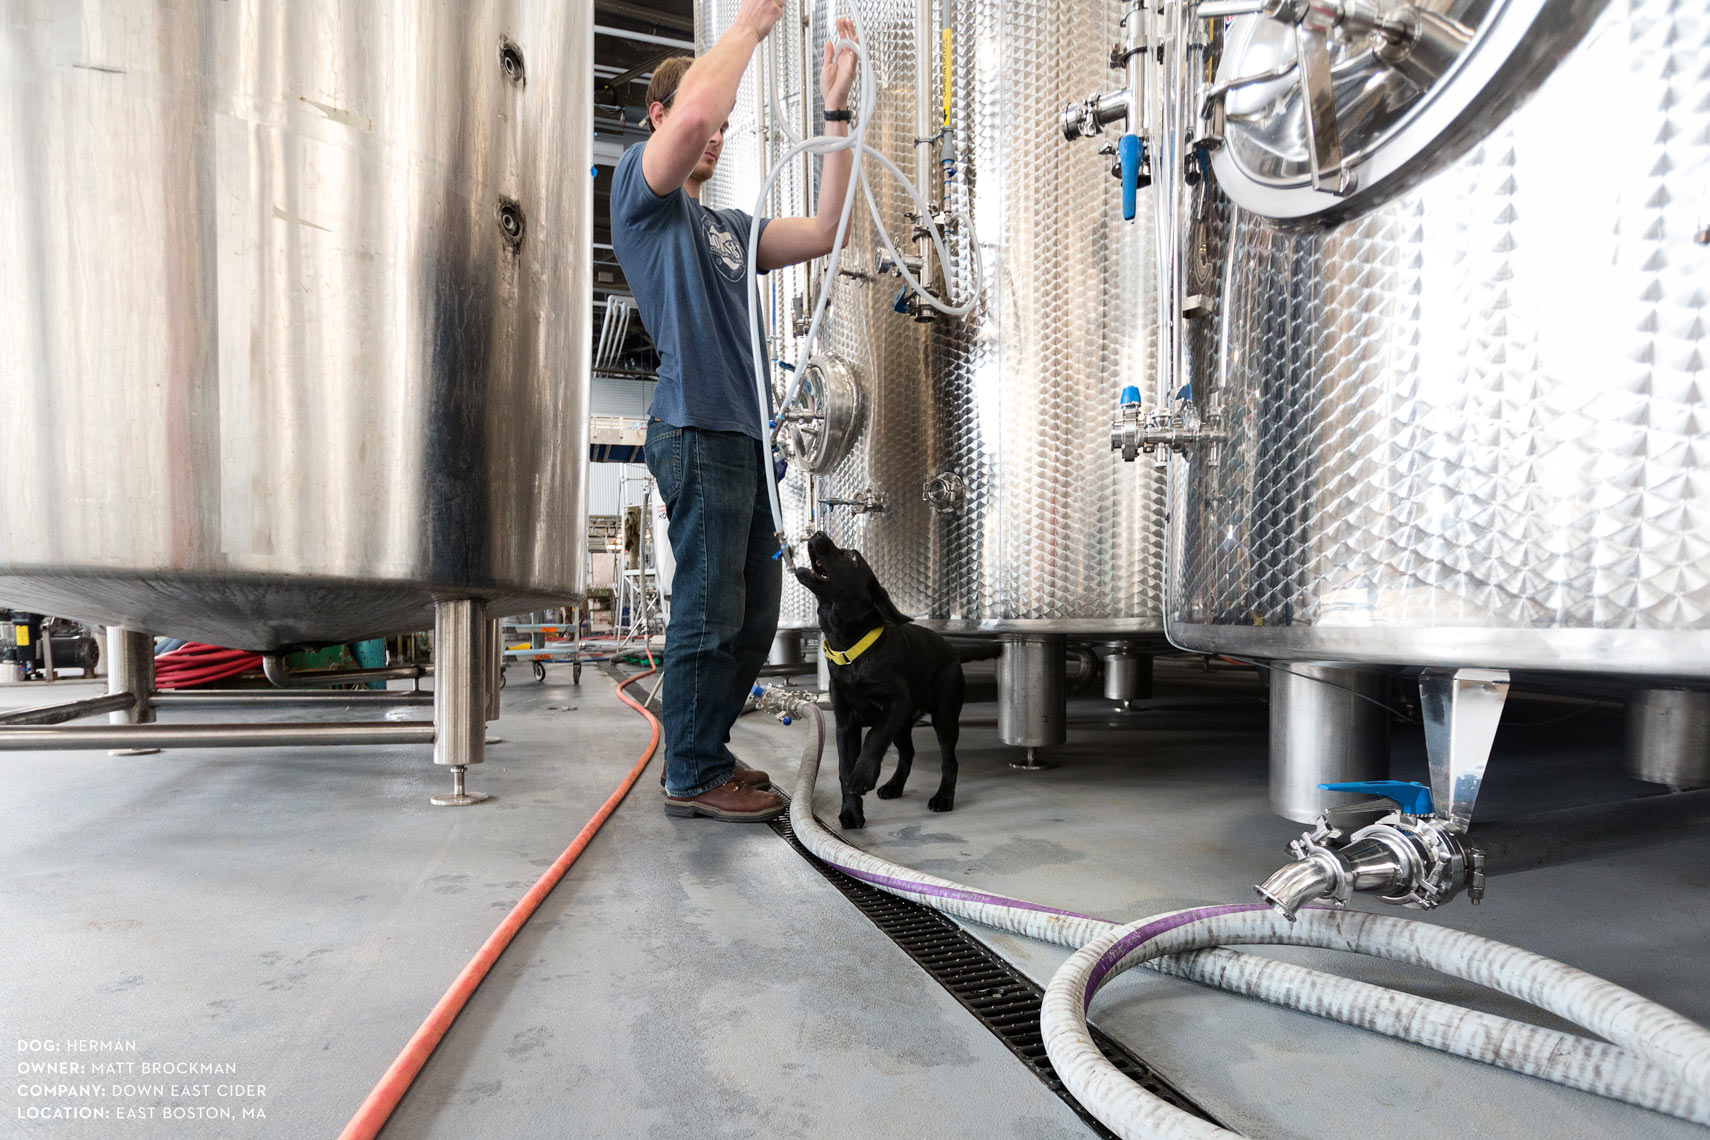 Dogs at work: Herman helping Matt out at Down East Cider